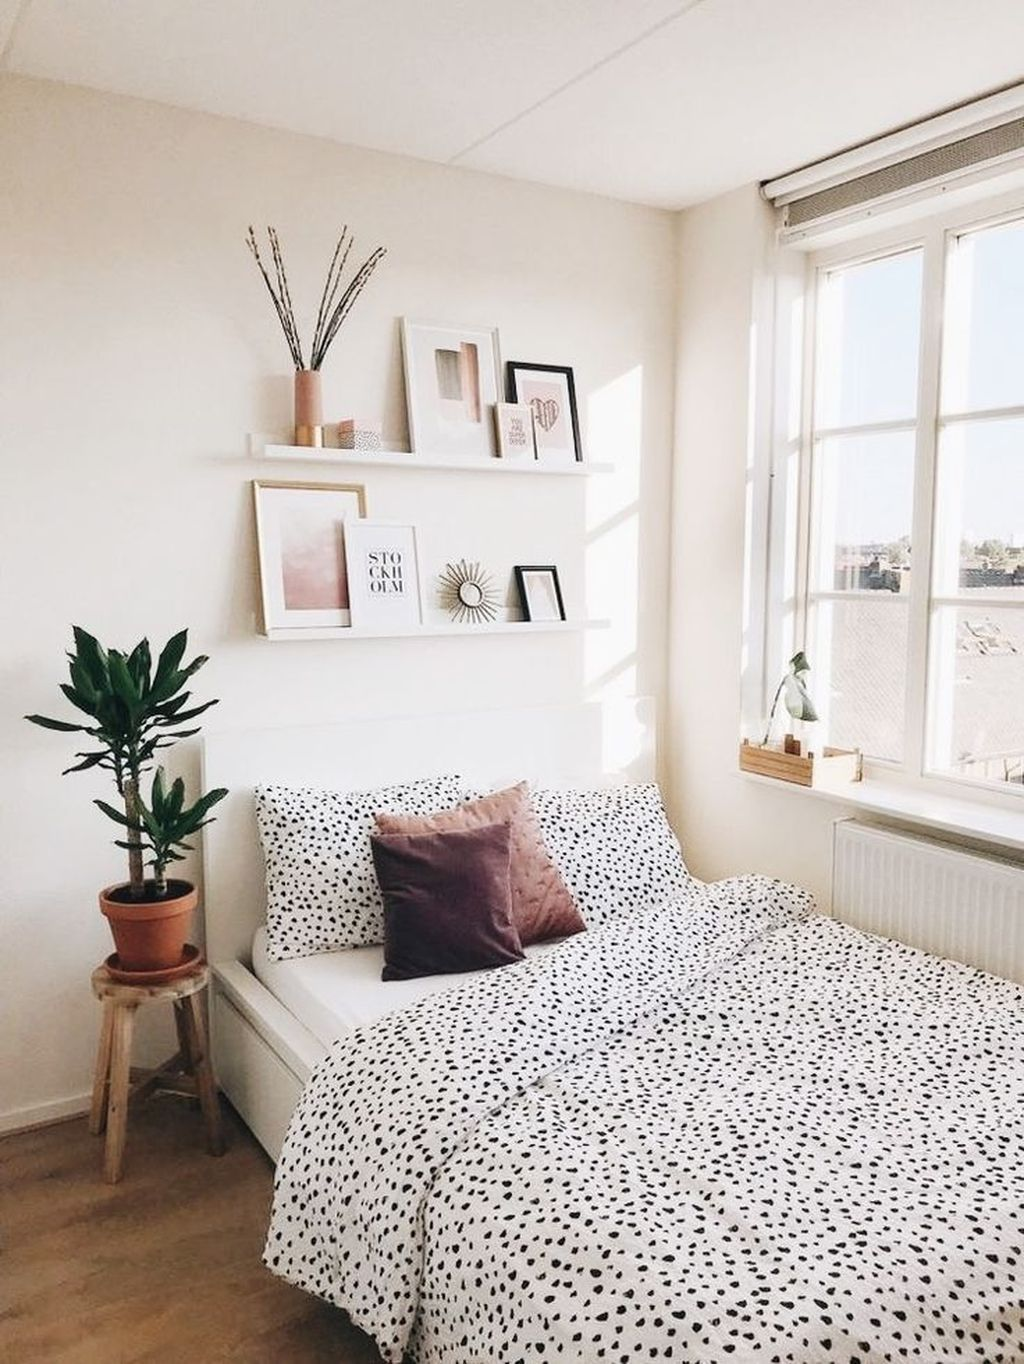 The Best College Apartment Bedroom Decor Ideas#apartment #bedroom #college #deco...#apartment #bedroom #college #deco #decor #ideasapartment